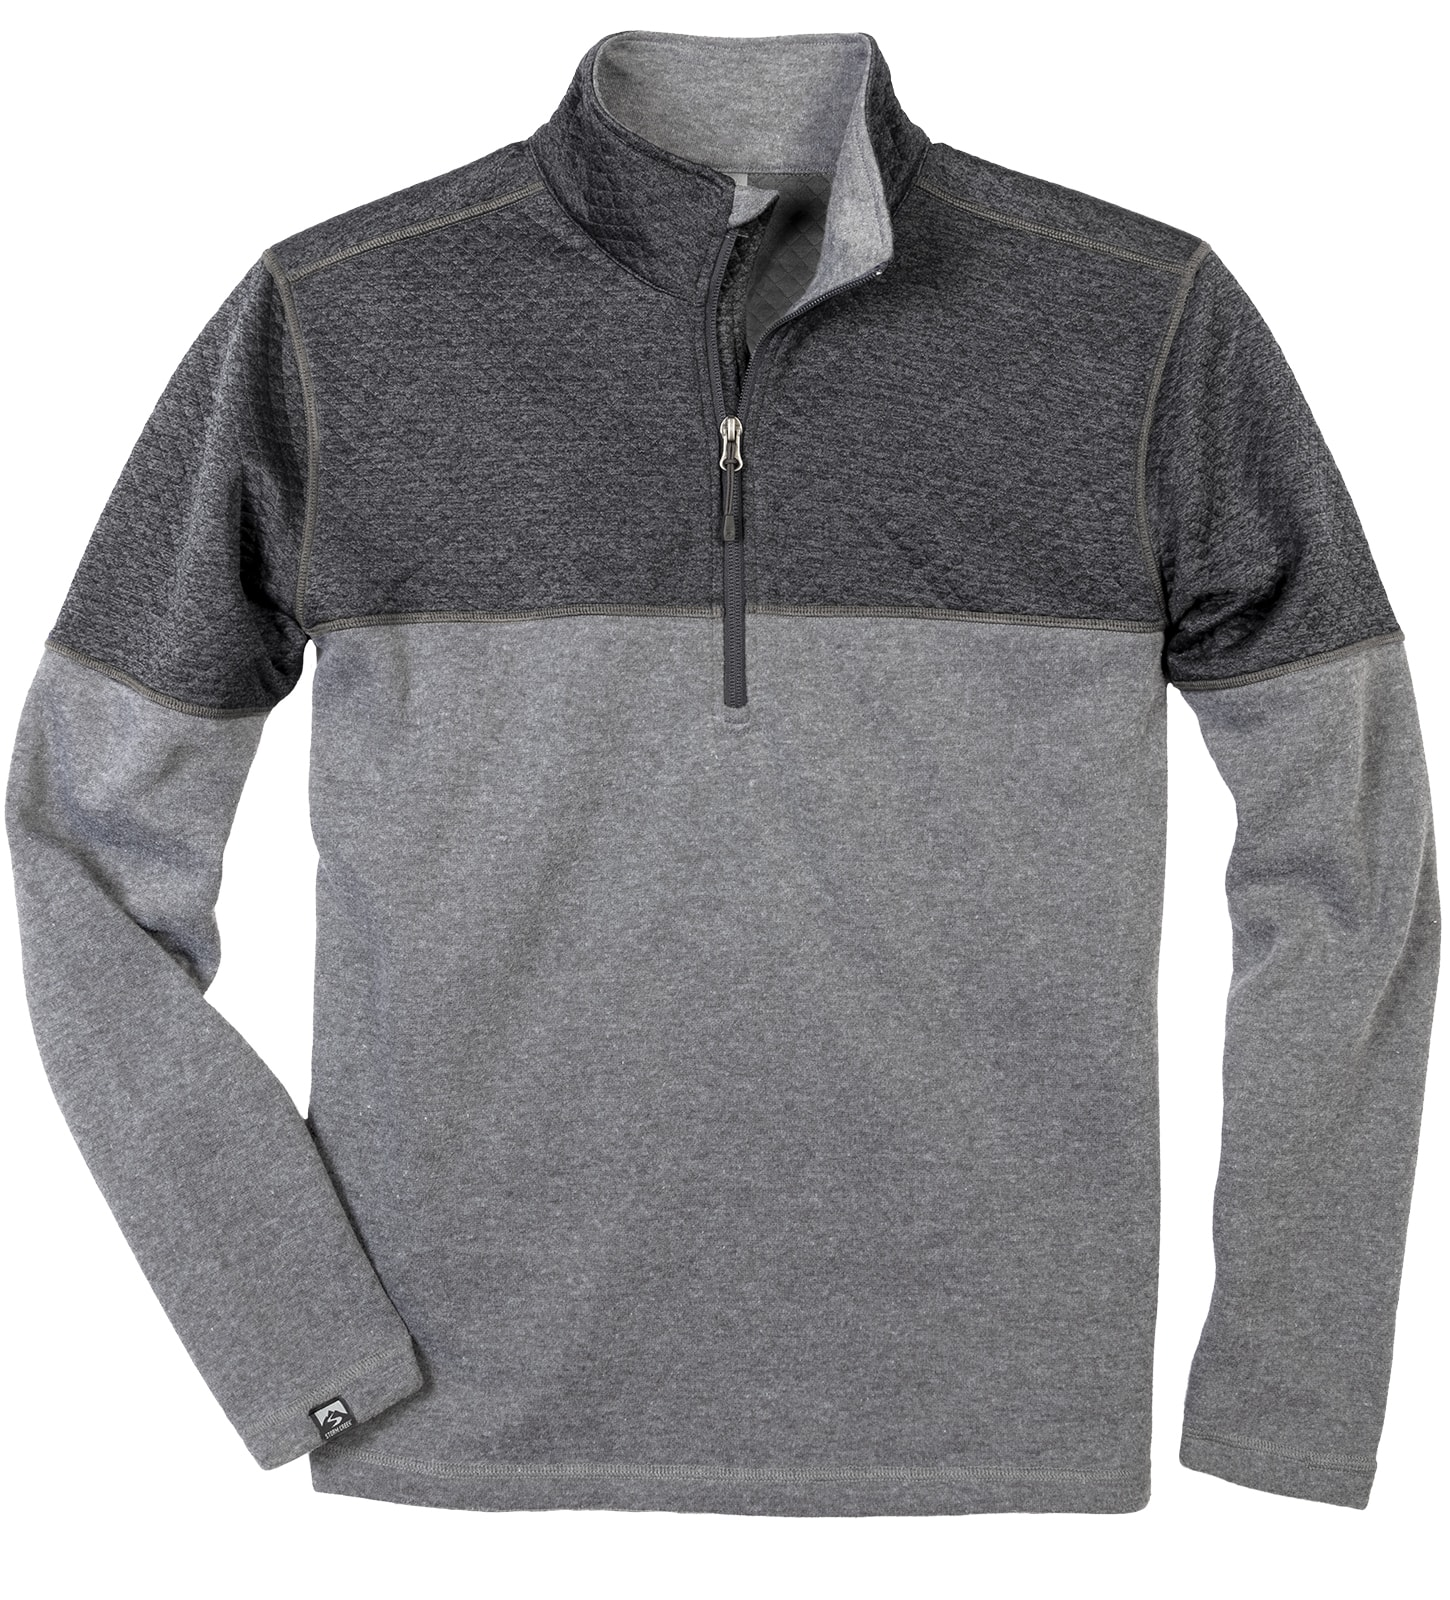 Storm Creek 2640 - Men's Diamond Fleece Pullover